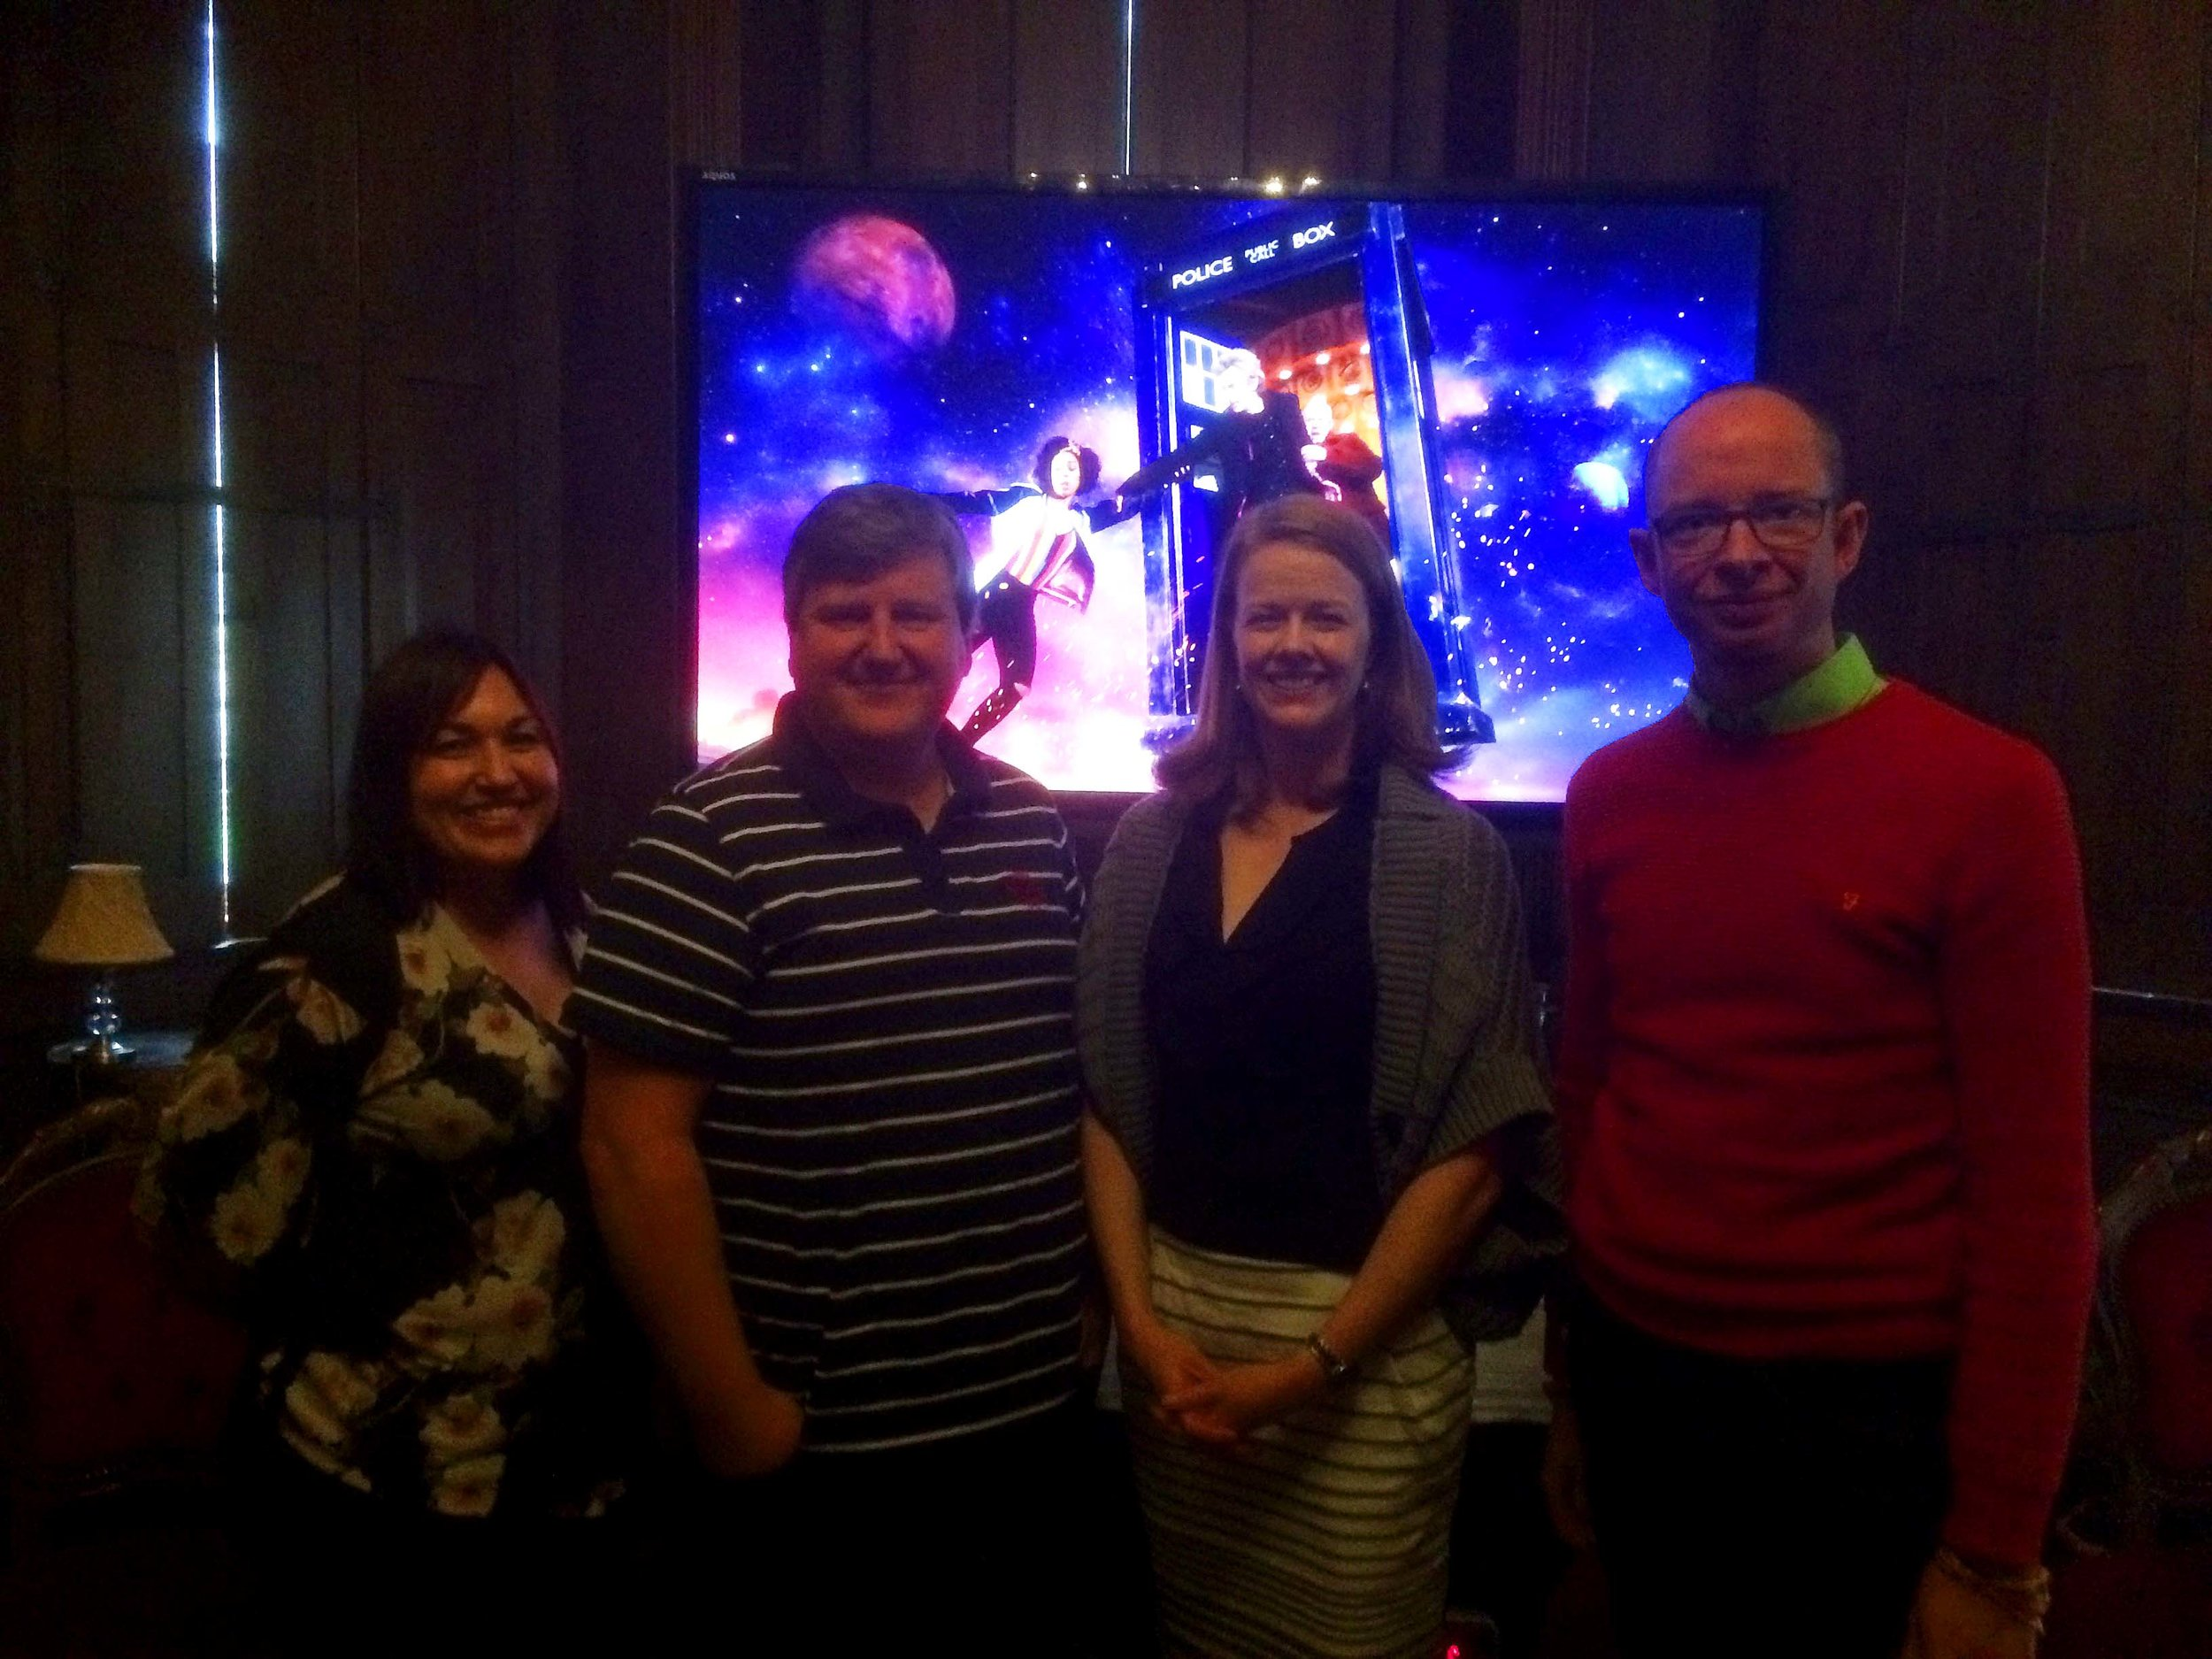 Part of the team who helped create the first binaural episode of Doctor Who. Sound Supervisor Cathy Robinson, Sound Mixer Darran Clement, Producer Nikki Wilson and Frank Melchior Head of Audio Research. Picture: Andy Howells